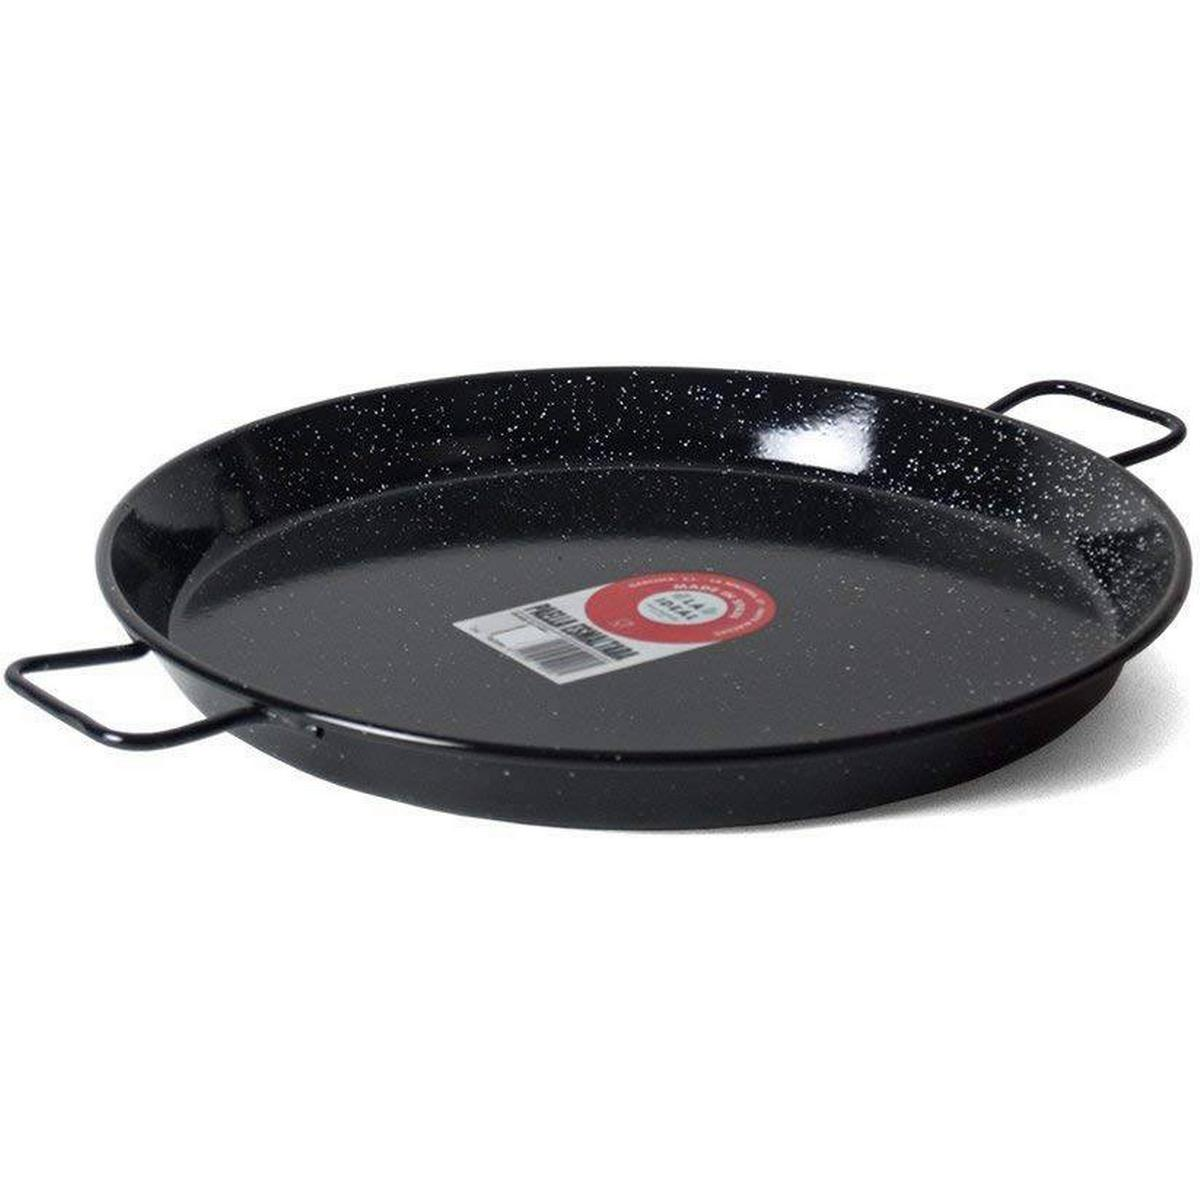 Casserole Induction Compatible Vitroceramique garcima cookware (74 products) on pricerunner • see lowest